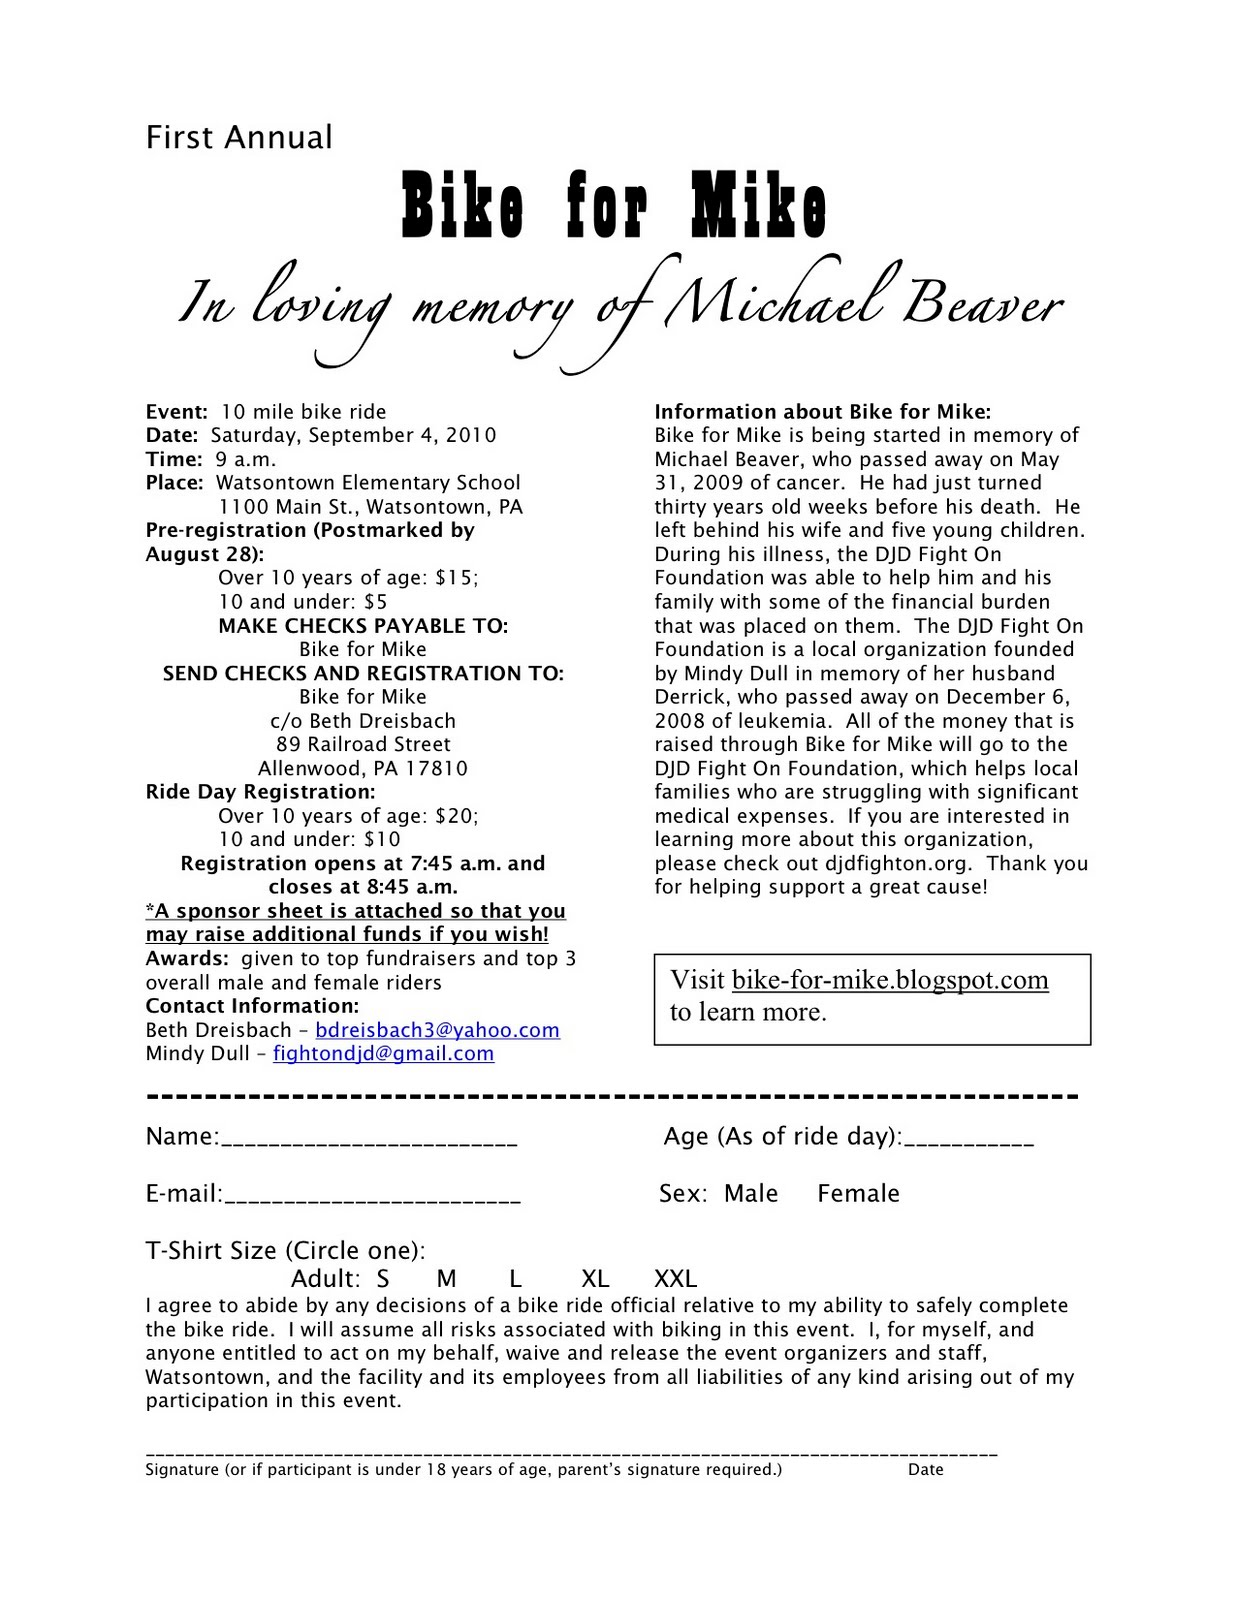 Bike For Mike: Registration And Sponsor Sheet